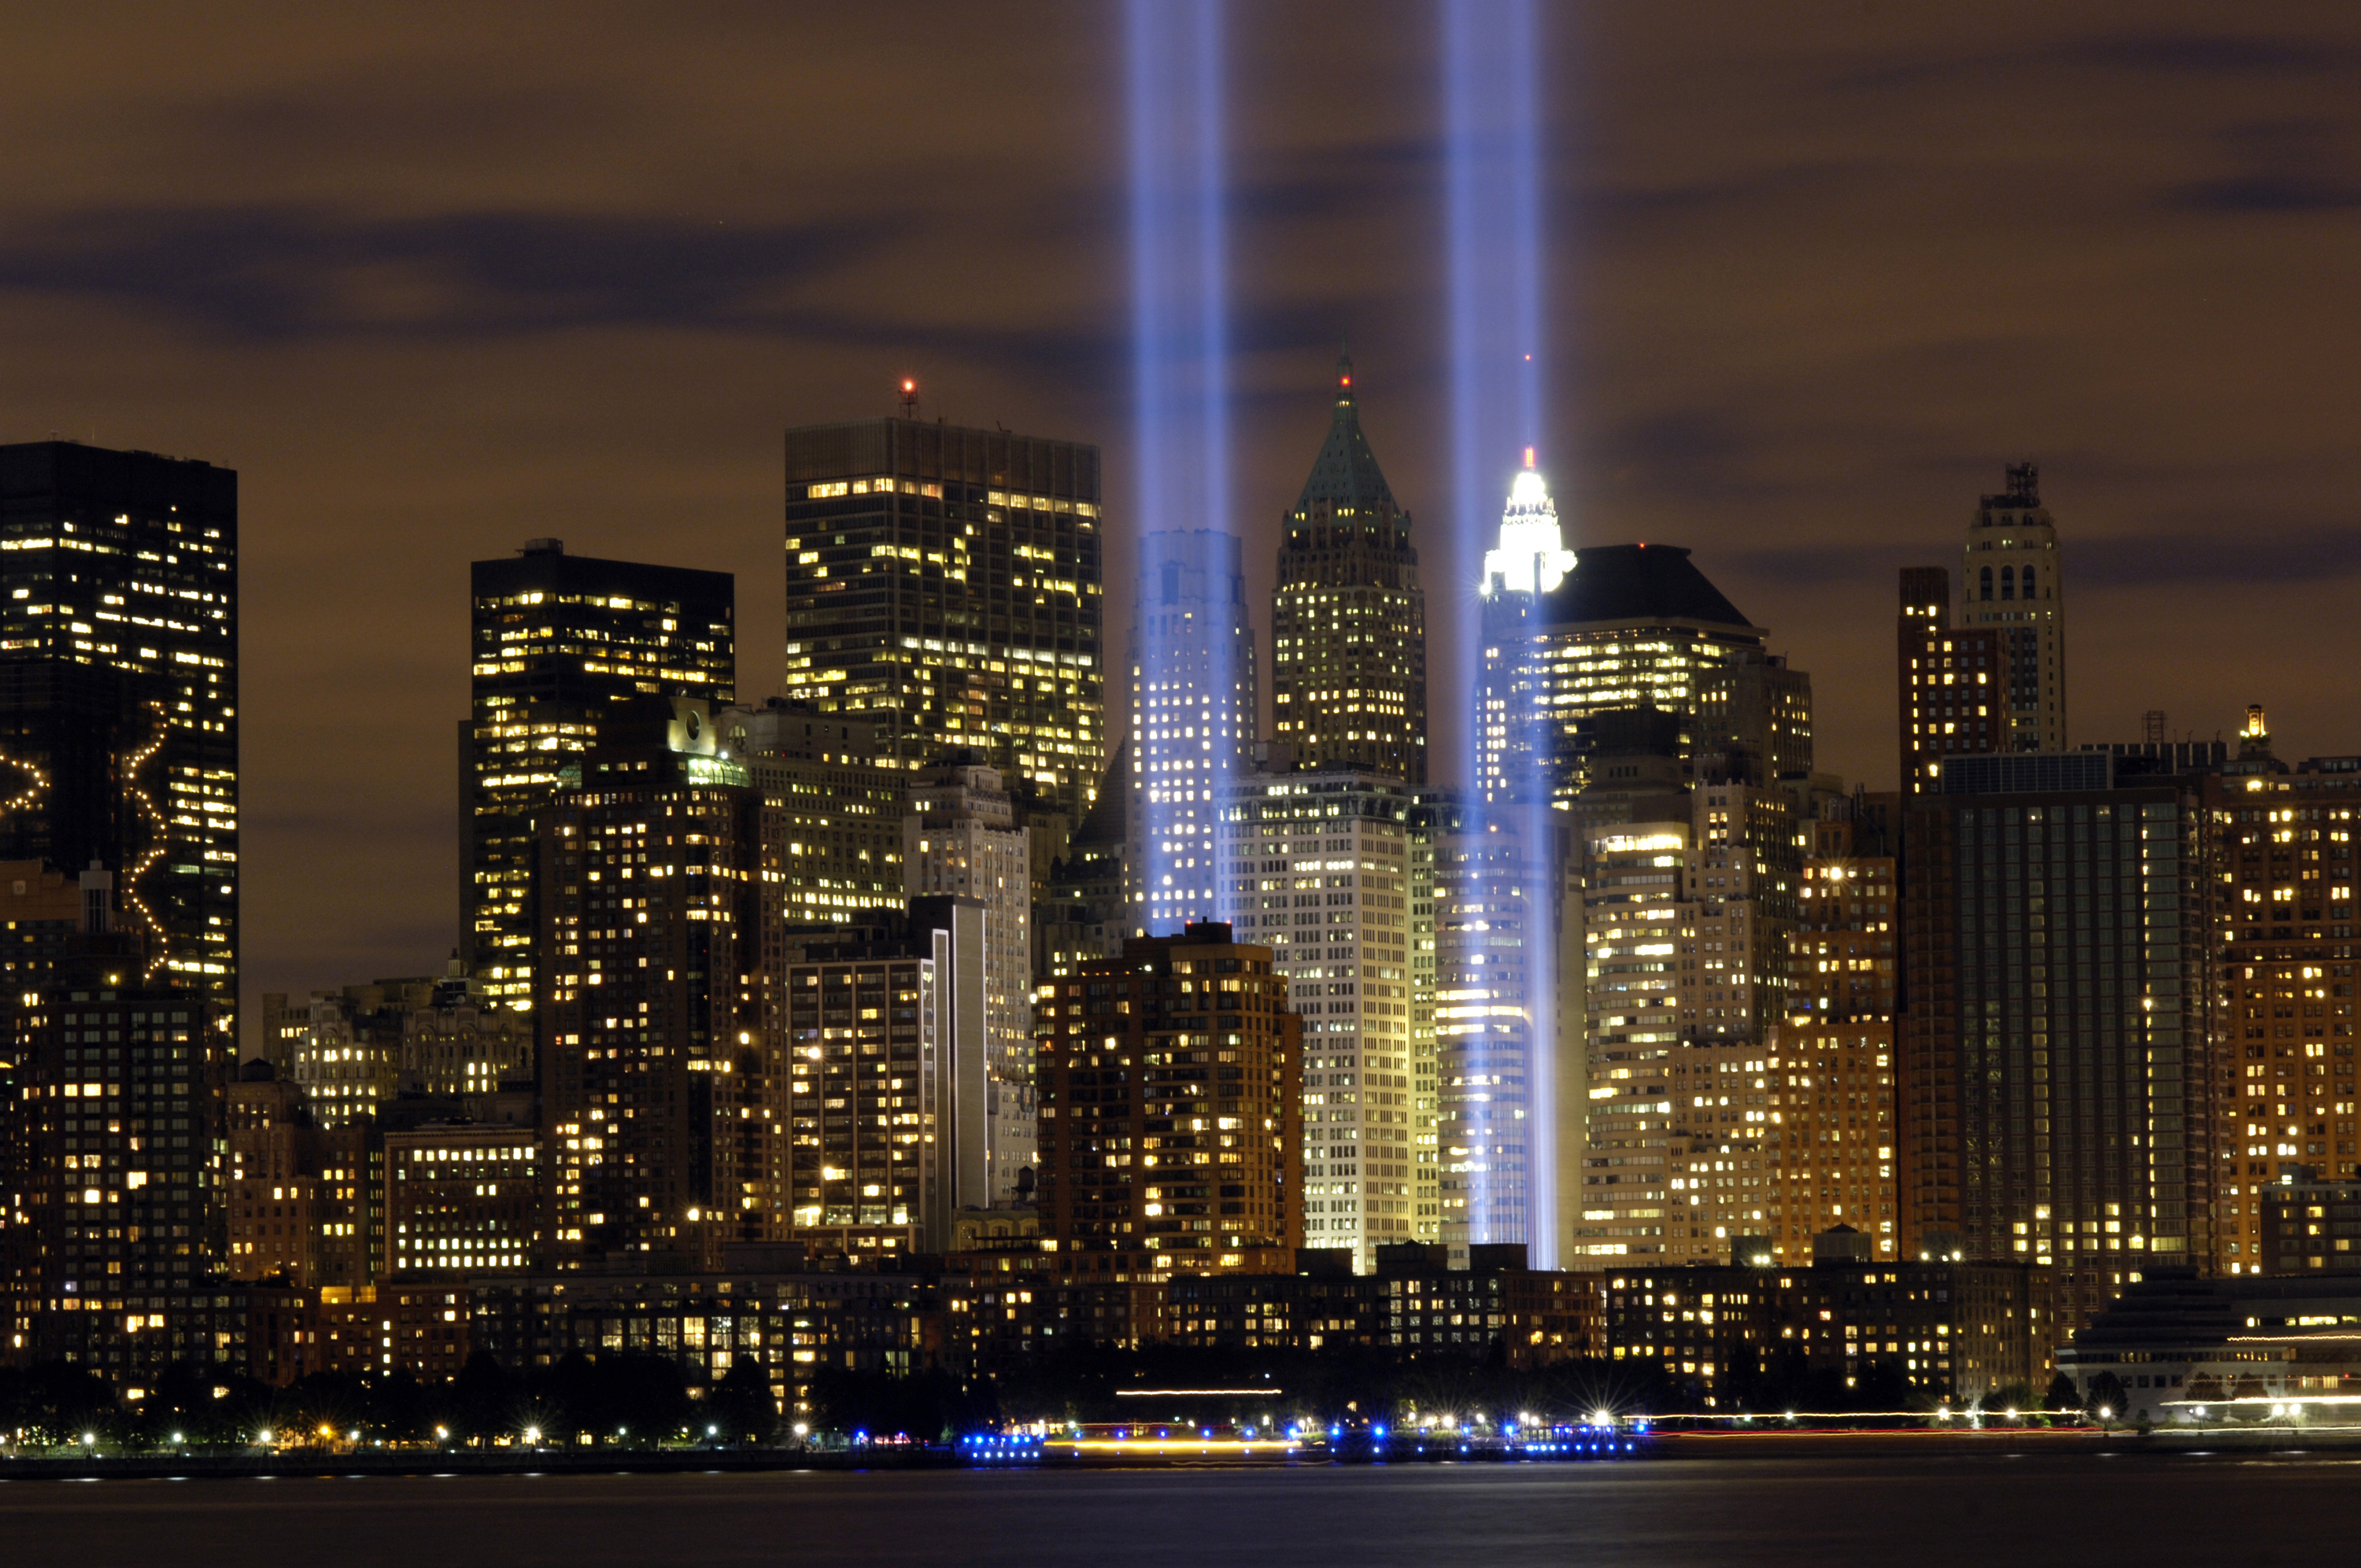 Towers of Light at the 9/11 Museum